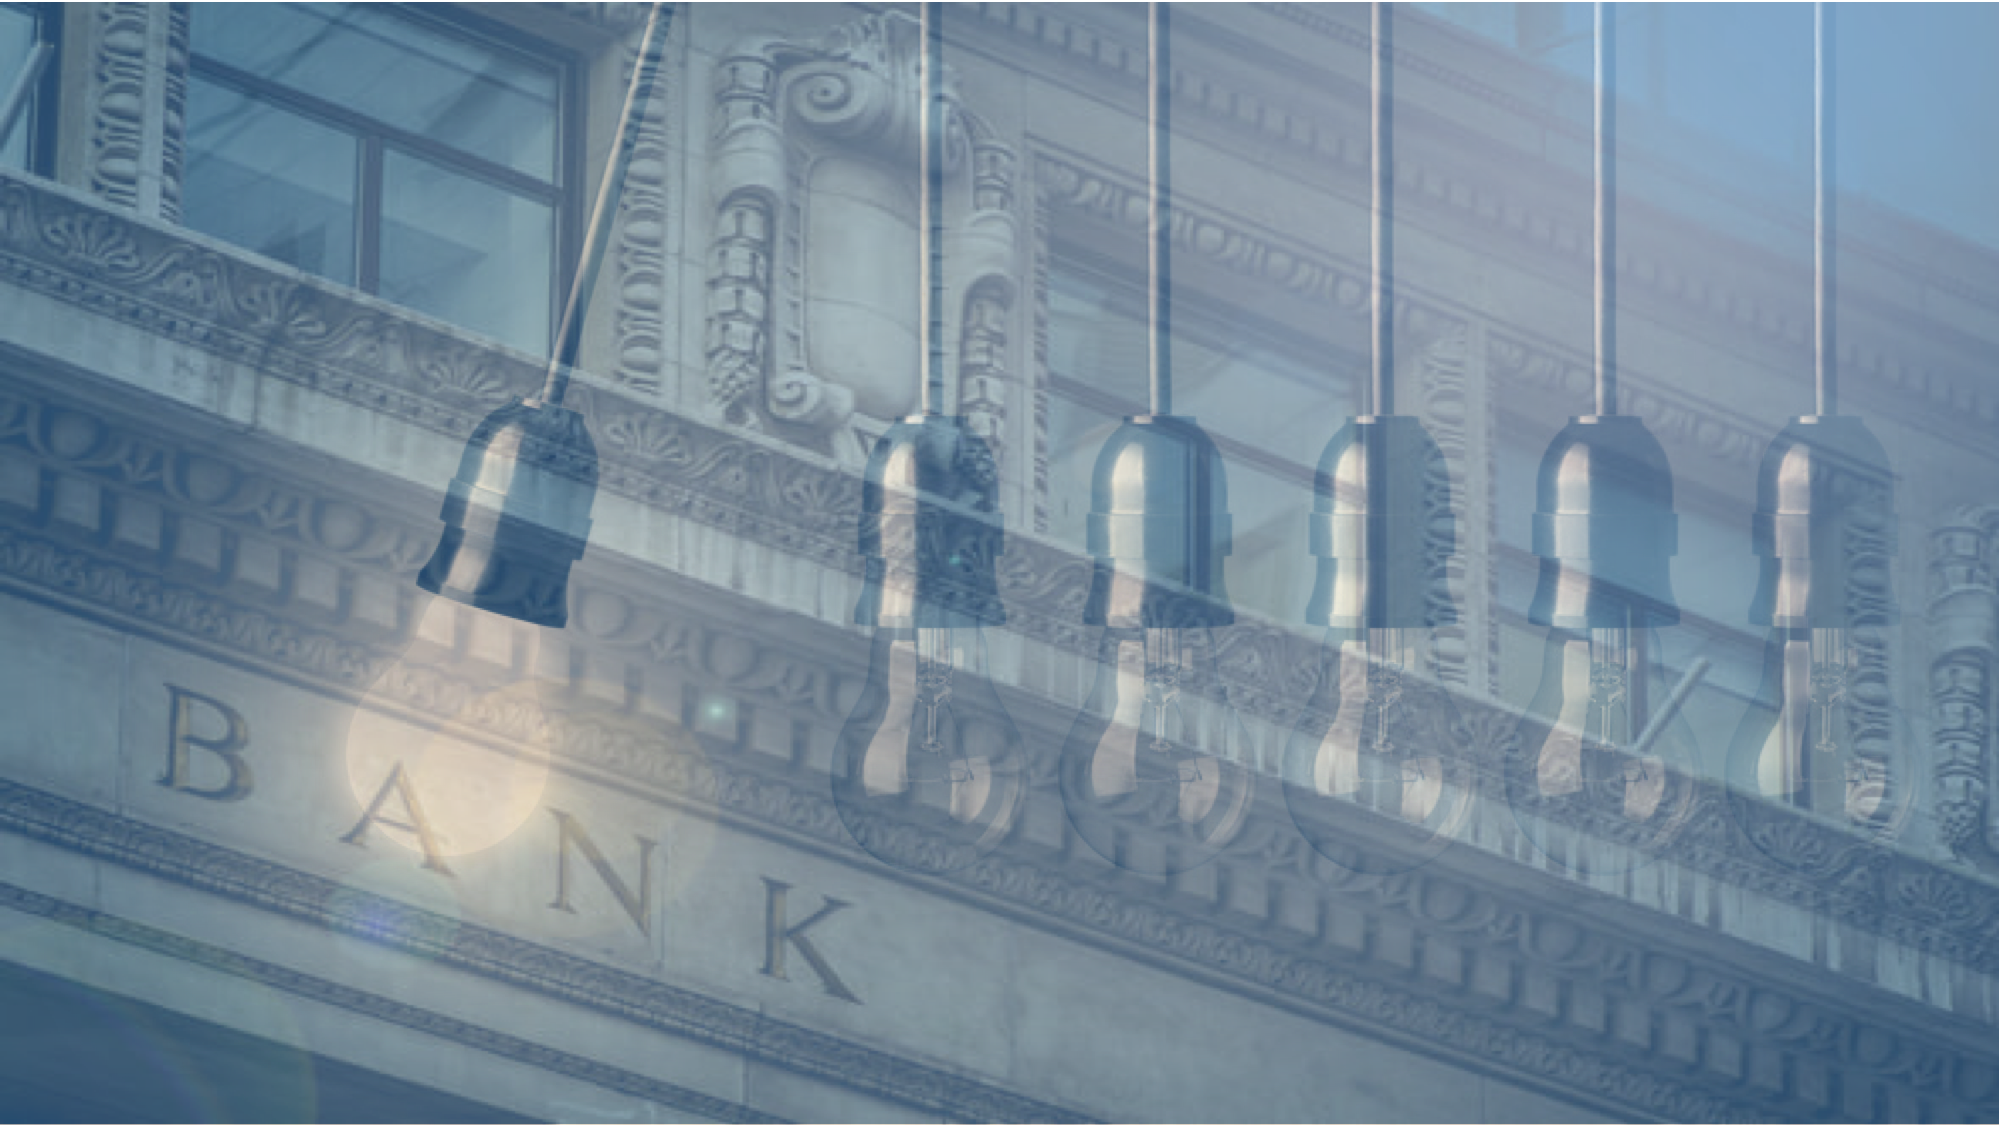 Implications for banks